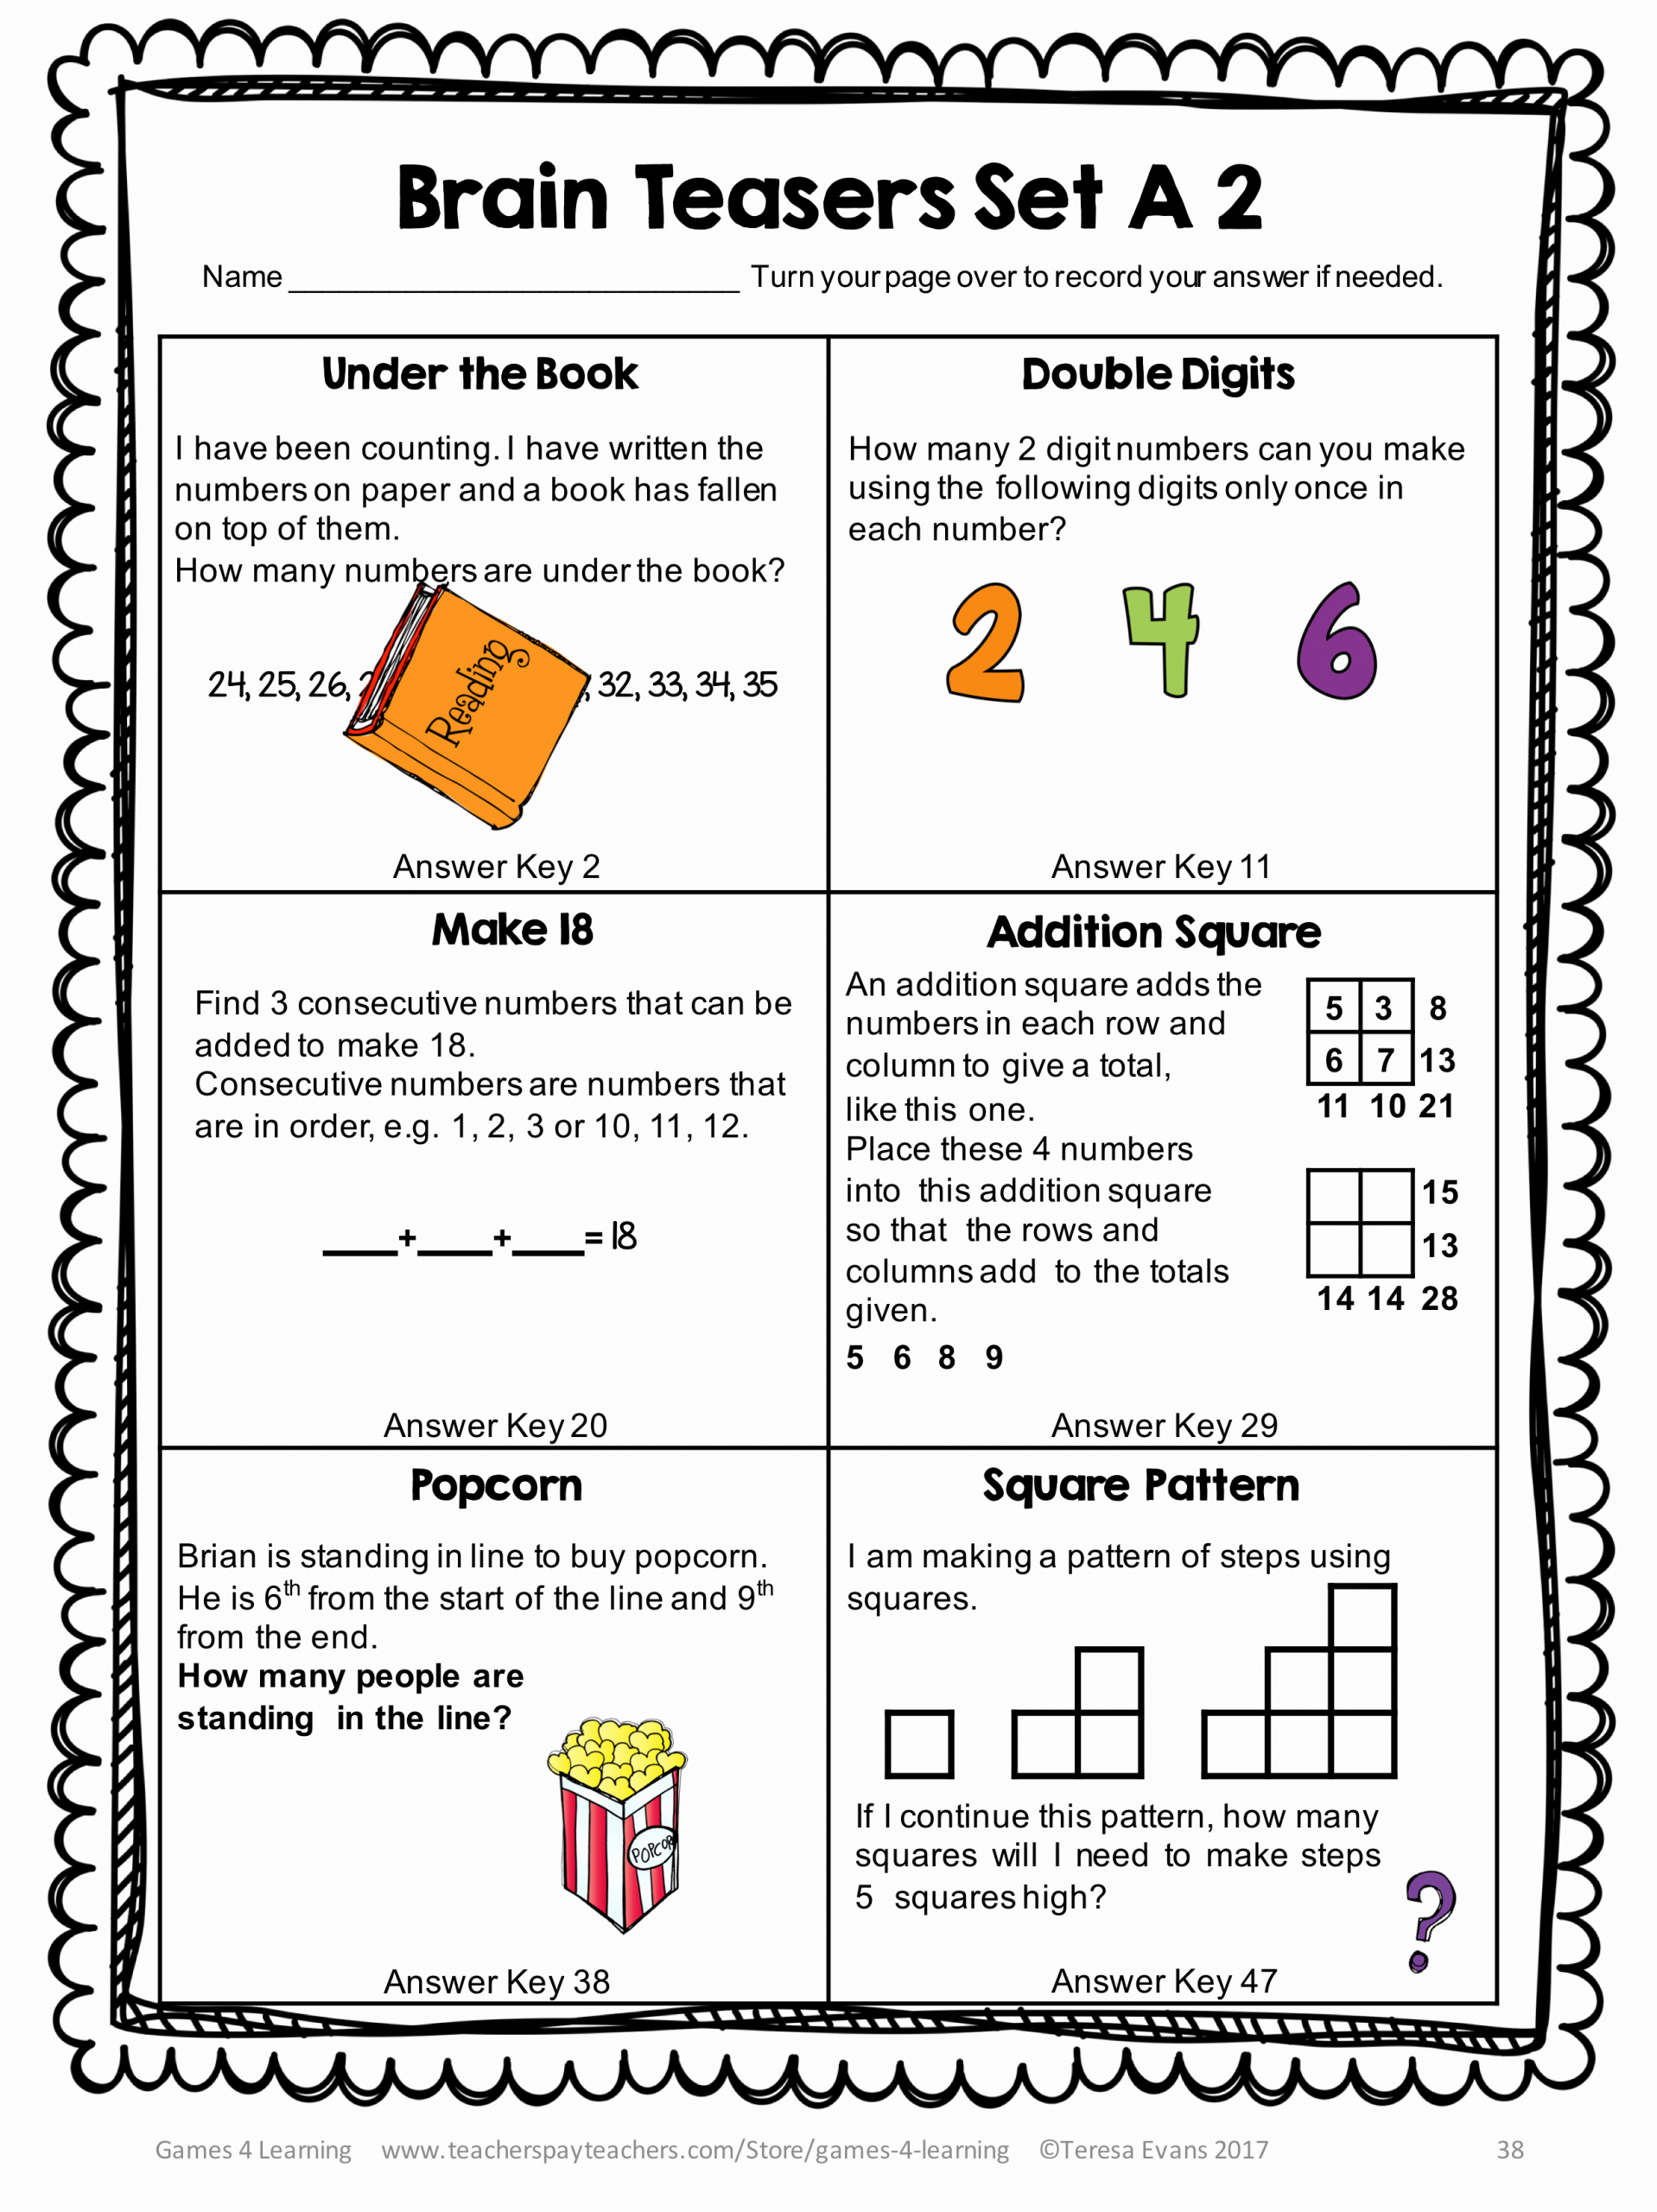 3rd Grade Brain Teasers Worksheets Luxury Printable Math Problems and Math Brain Teasers Cards From